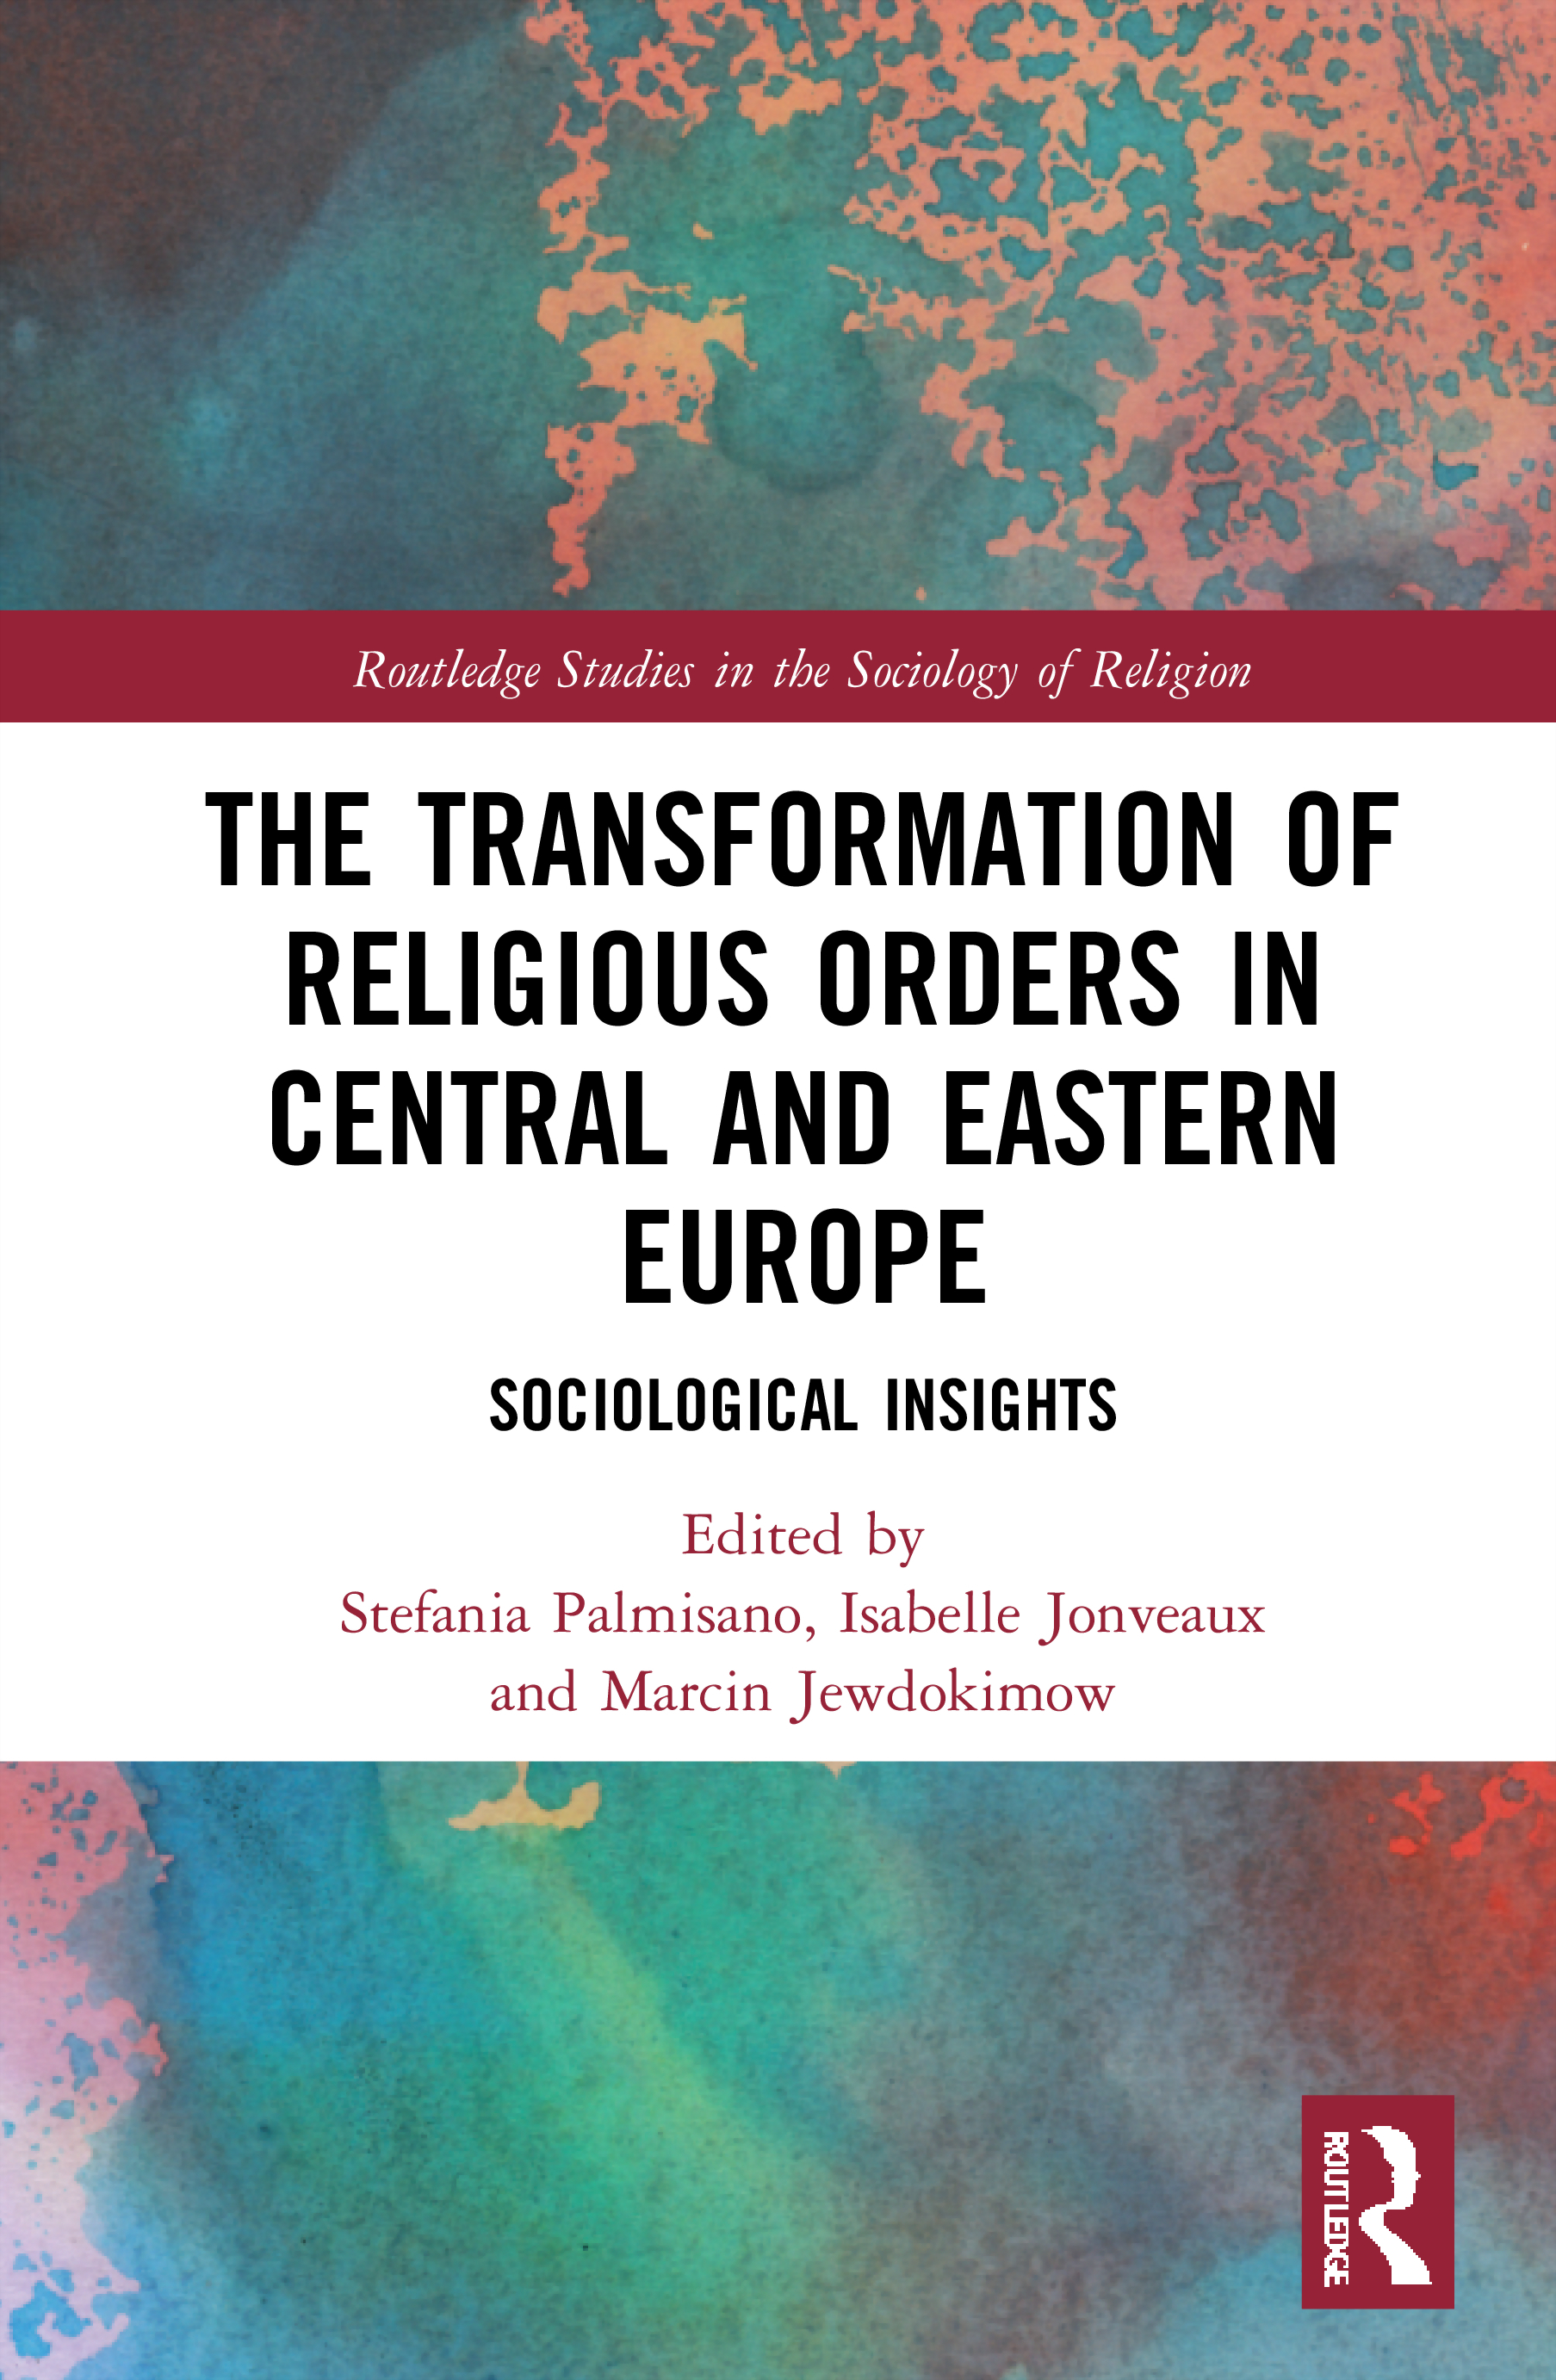 The Transformation of Religious Orders in Central and Eastern Europe: